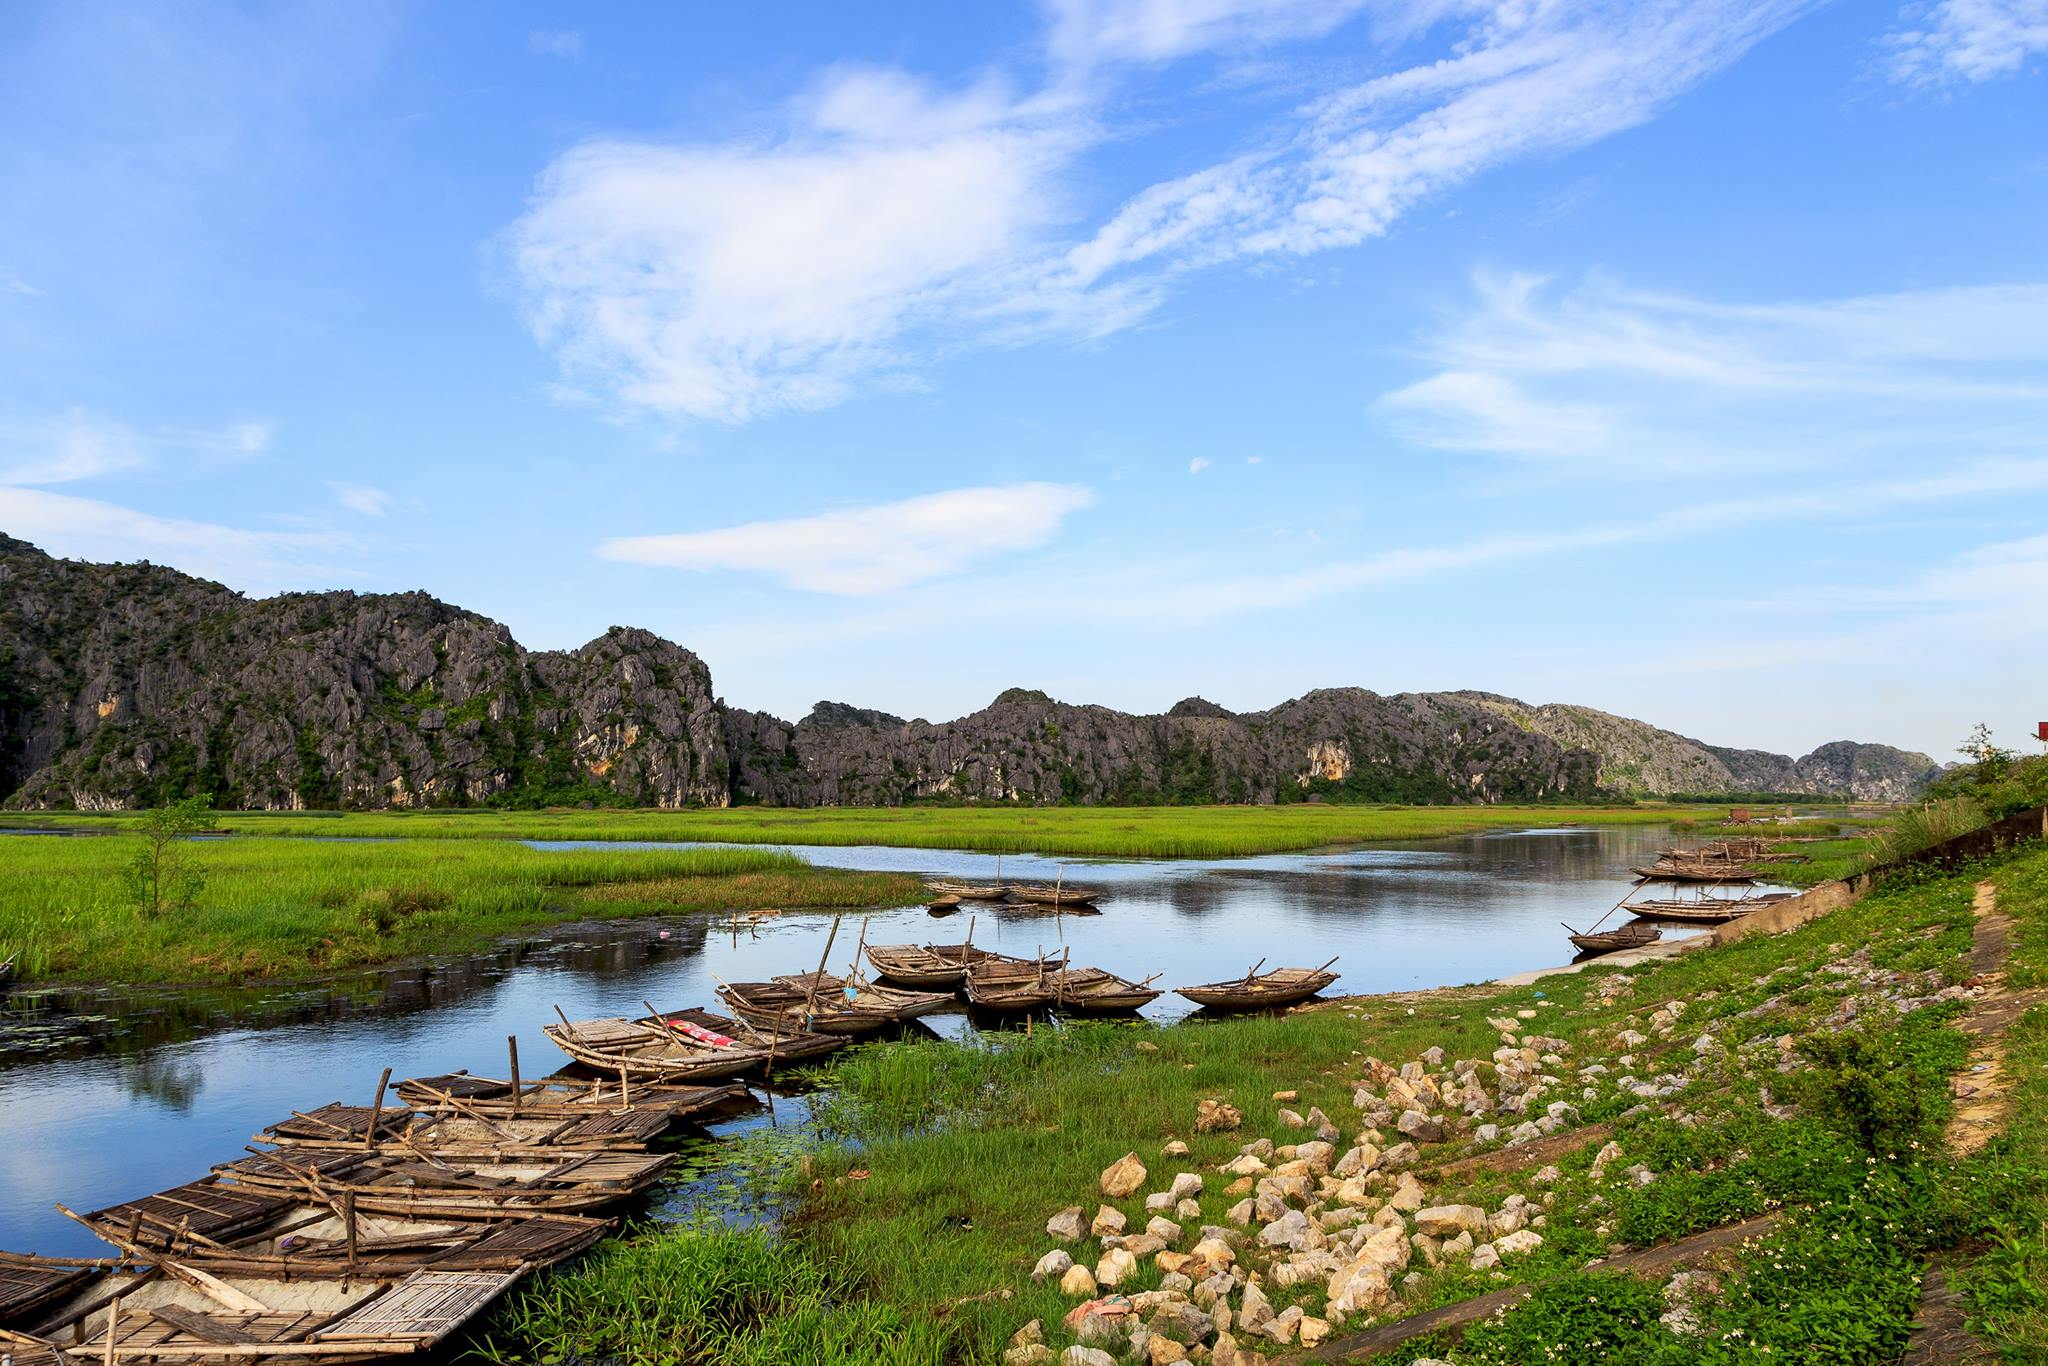 … and your eyes are satisfied with peaceful scenery of the rural northern Vietnam